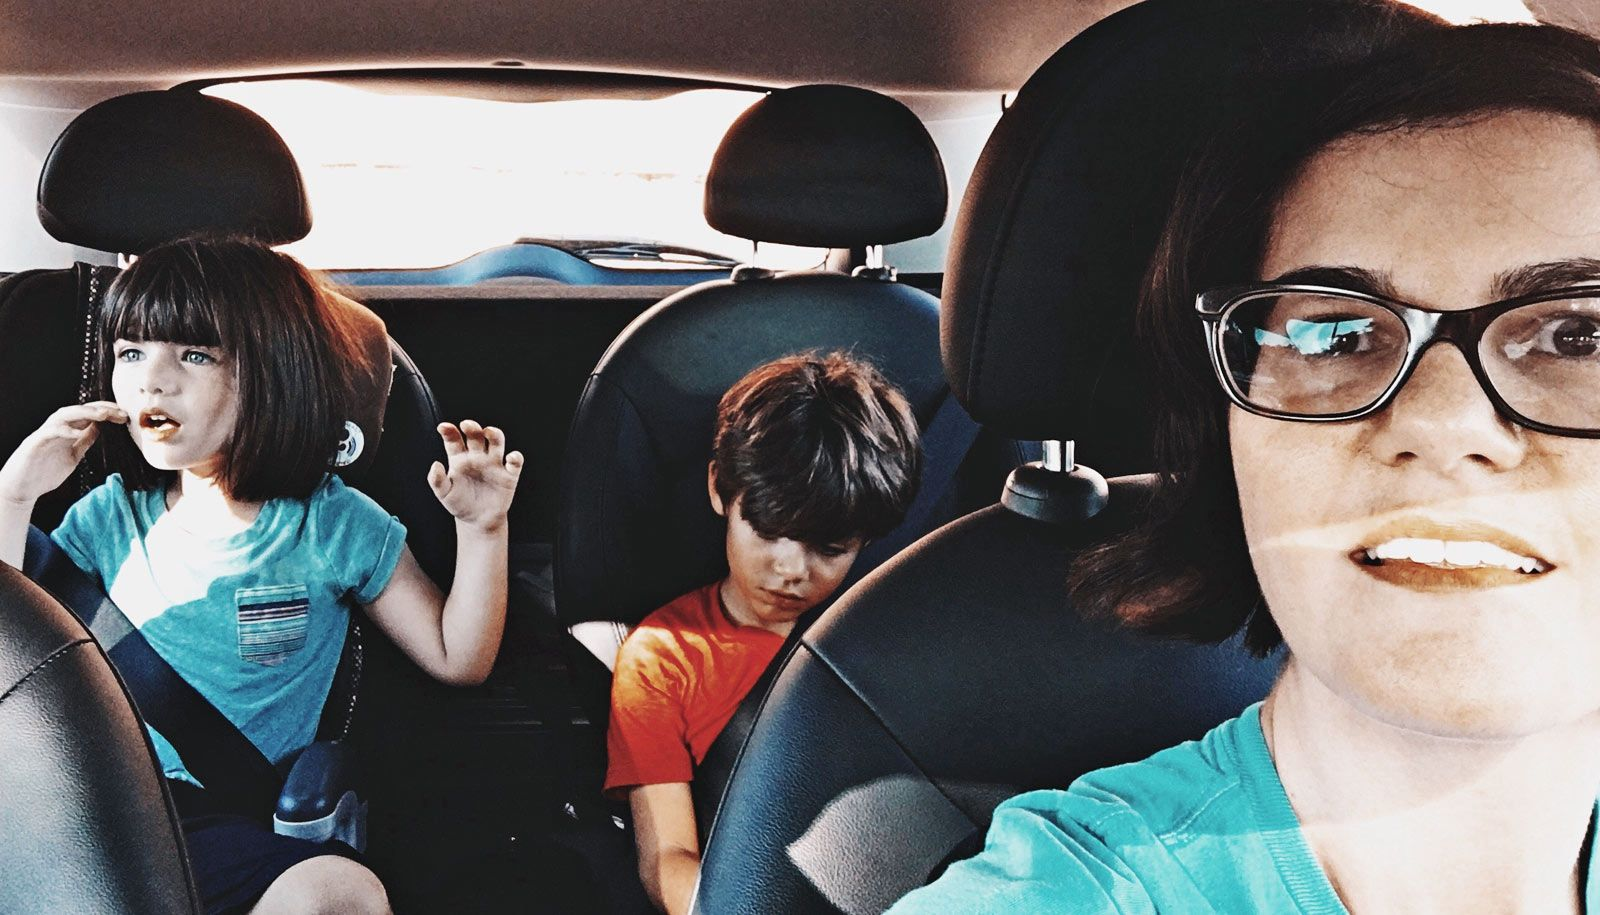 Half of parents talk on the phone while driving kids ...